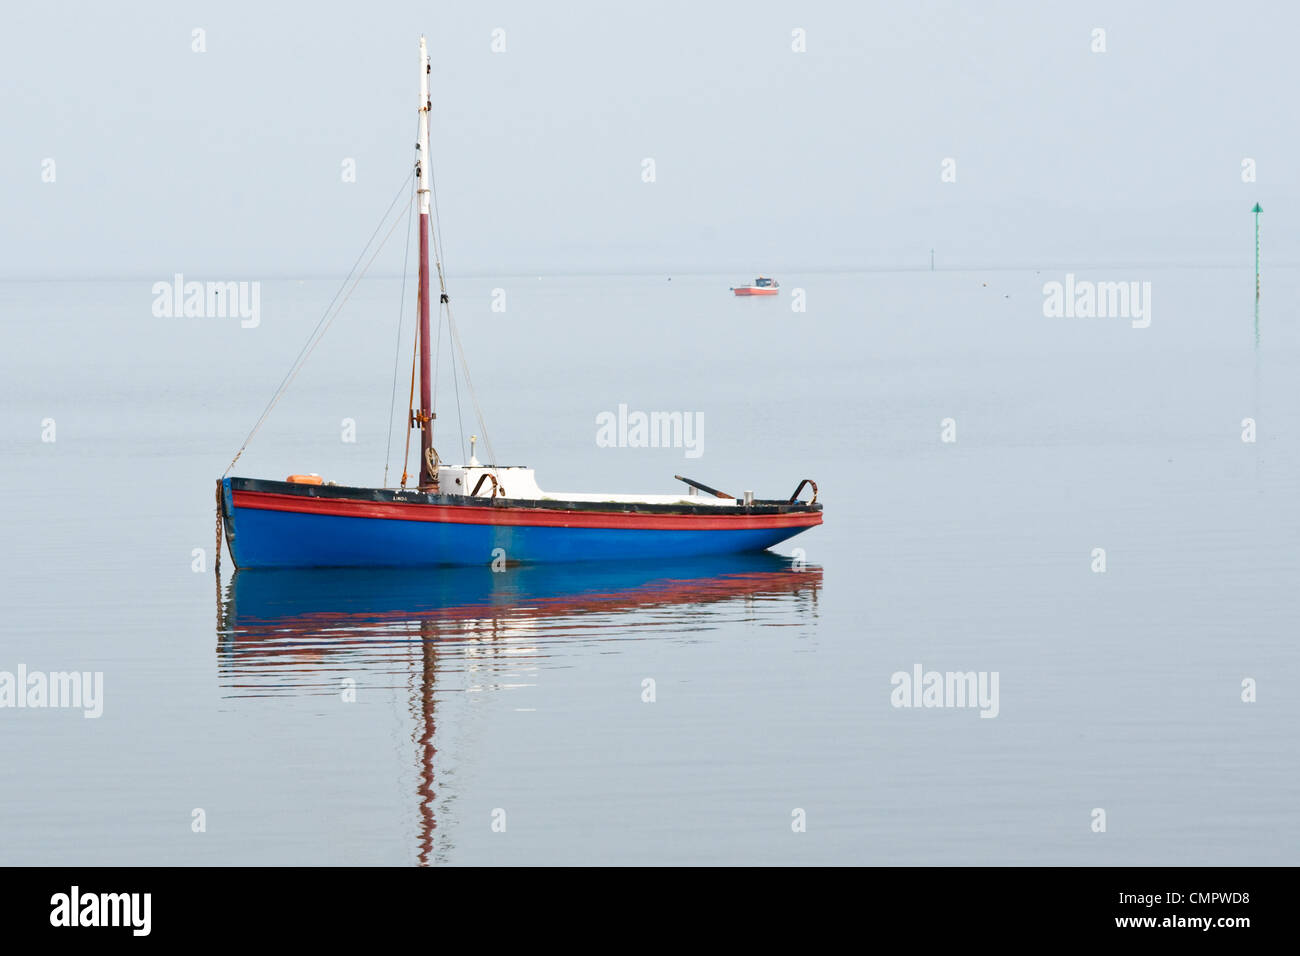 Lancashire Nobby traditional prawn fishing boat moored on a calm day at Morecambe, Lancashire - Stock Image